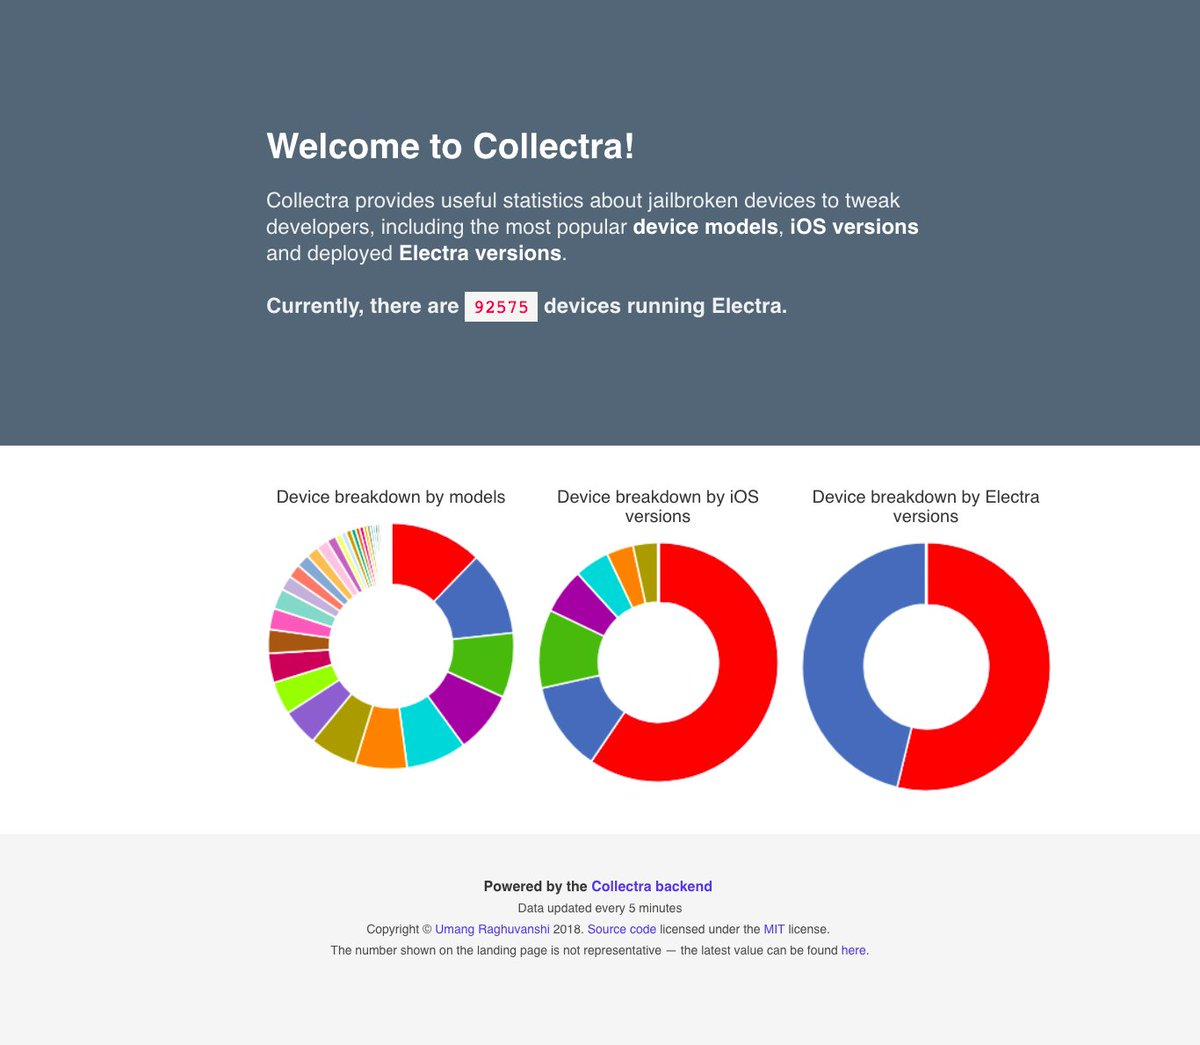 Presenting Collectra — an up-to-date statistics dashboard with device and version popularity, allowing tweak developers to have a better idea of the jailbroken iOS ecosystem. collectra.umangis.me